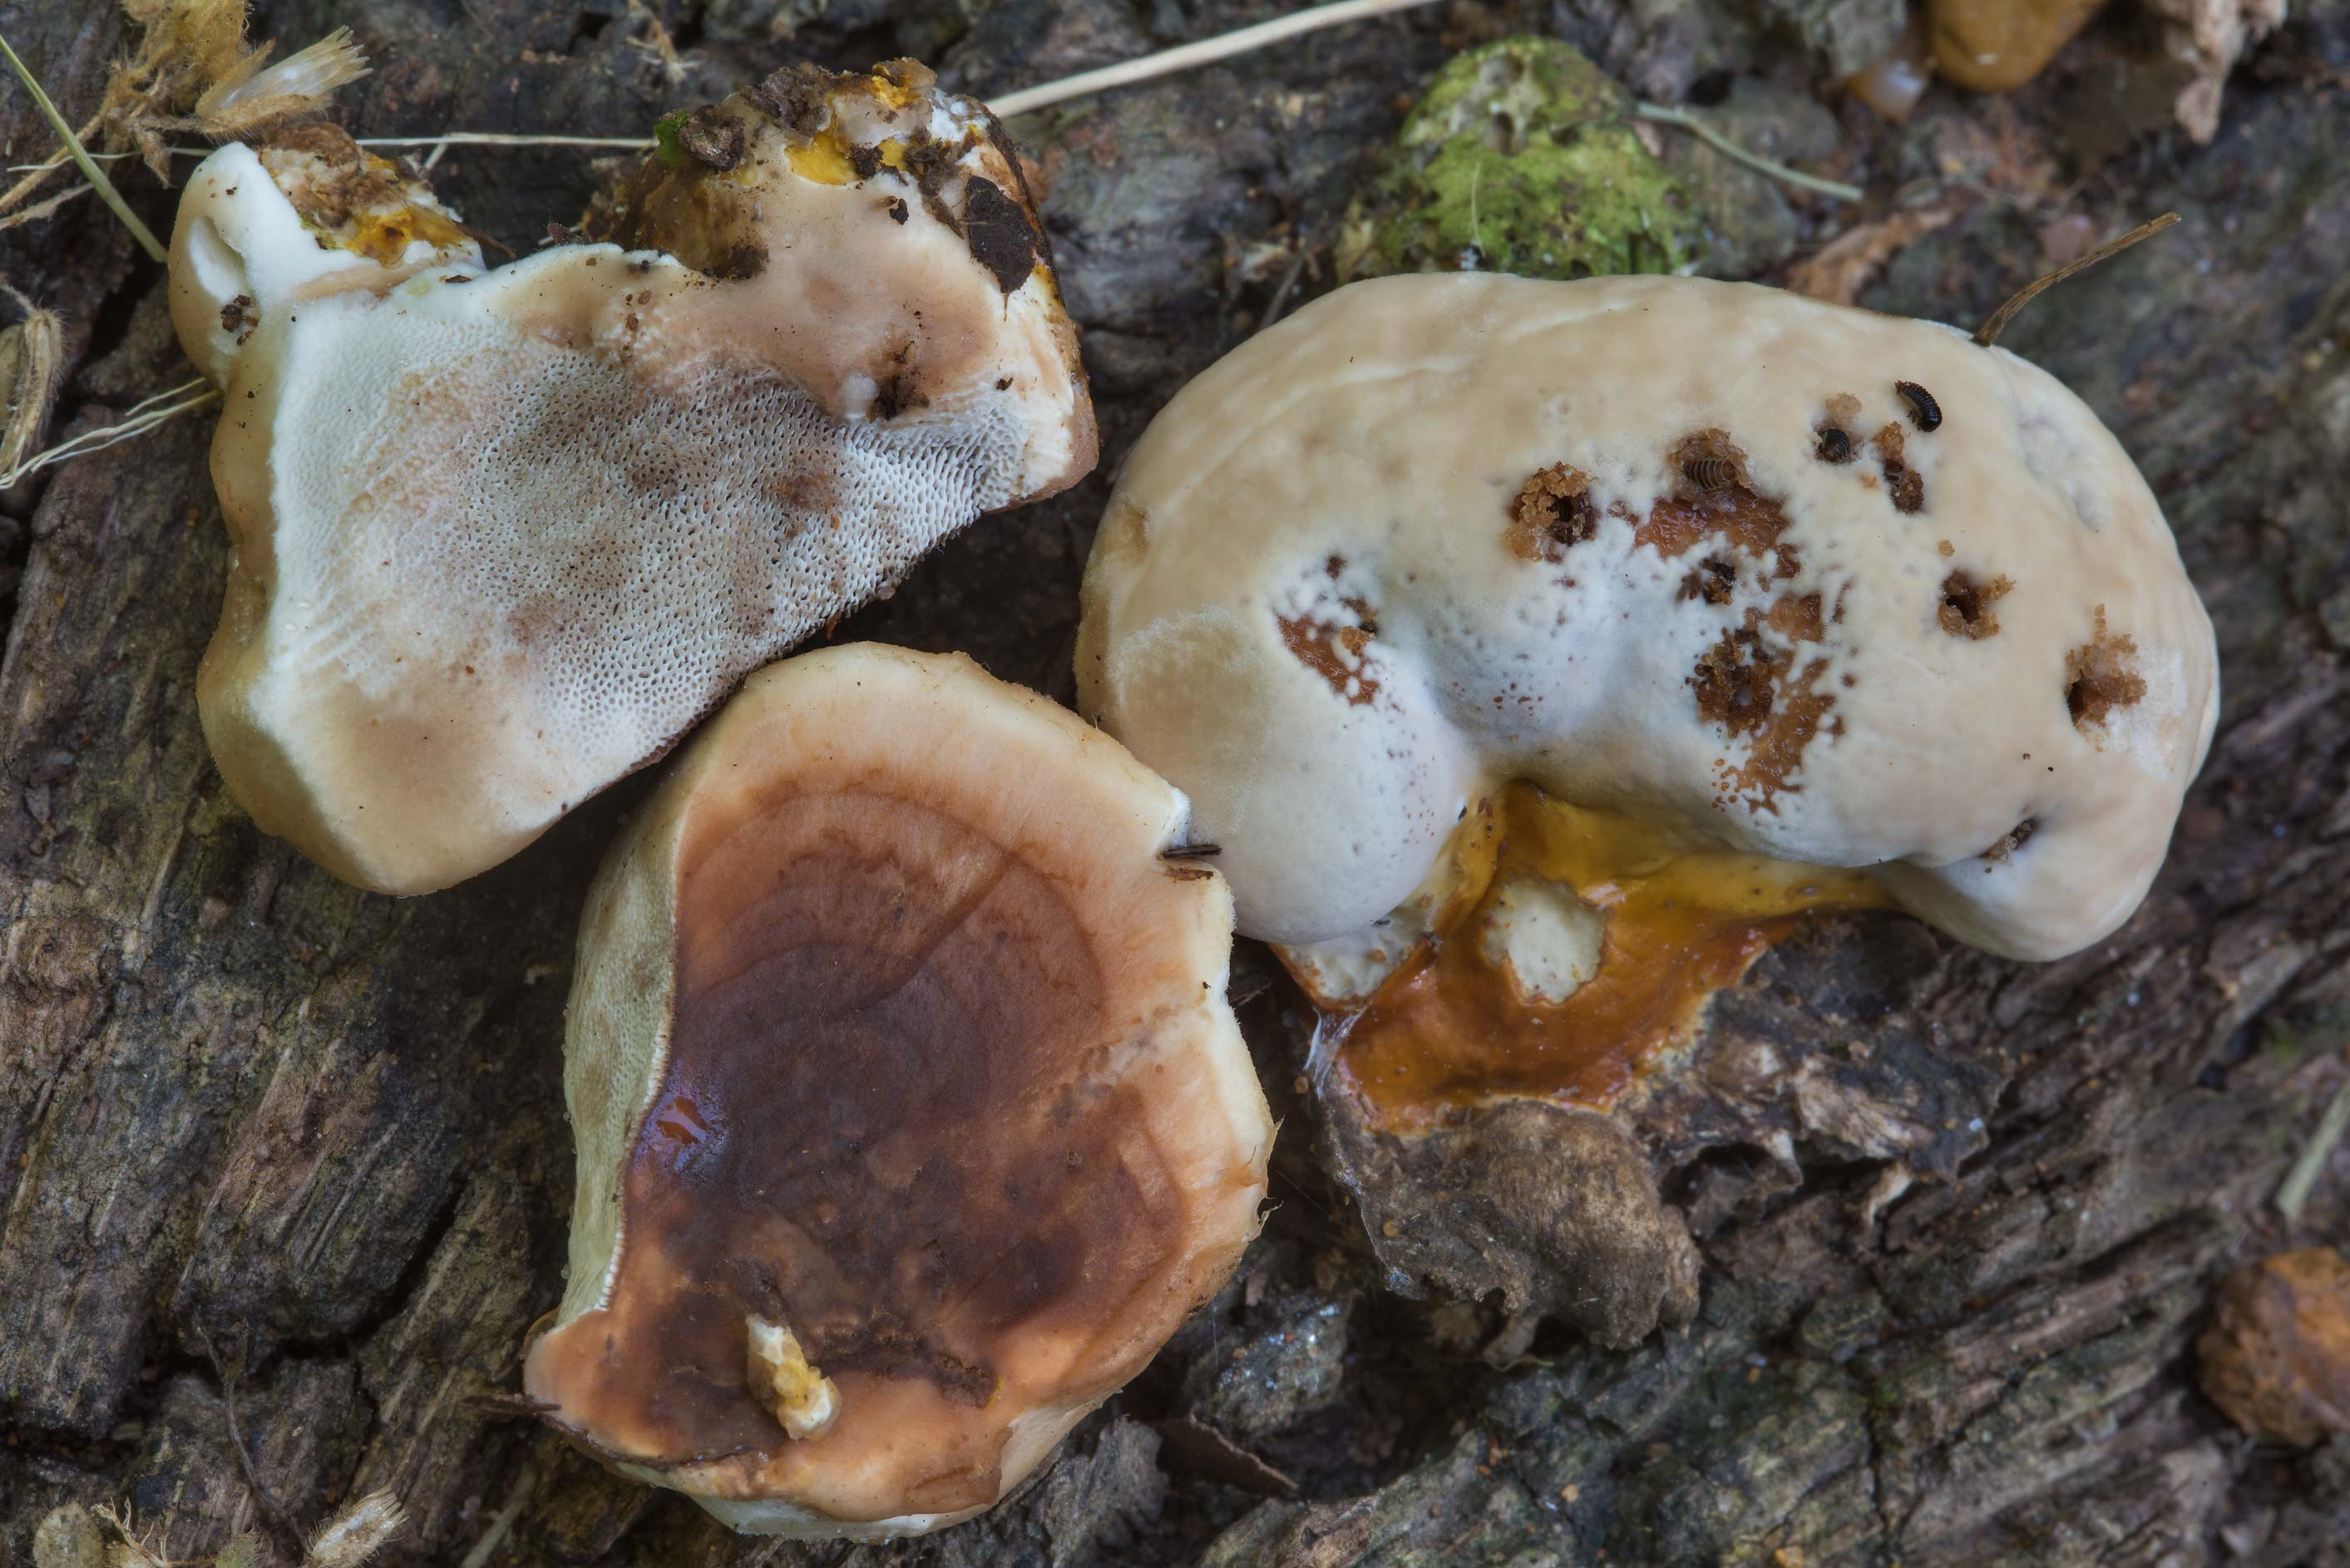 Young polypore mushroom Ganoderma sessile in Lick Creek Park. College Station, Texas